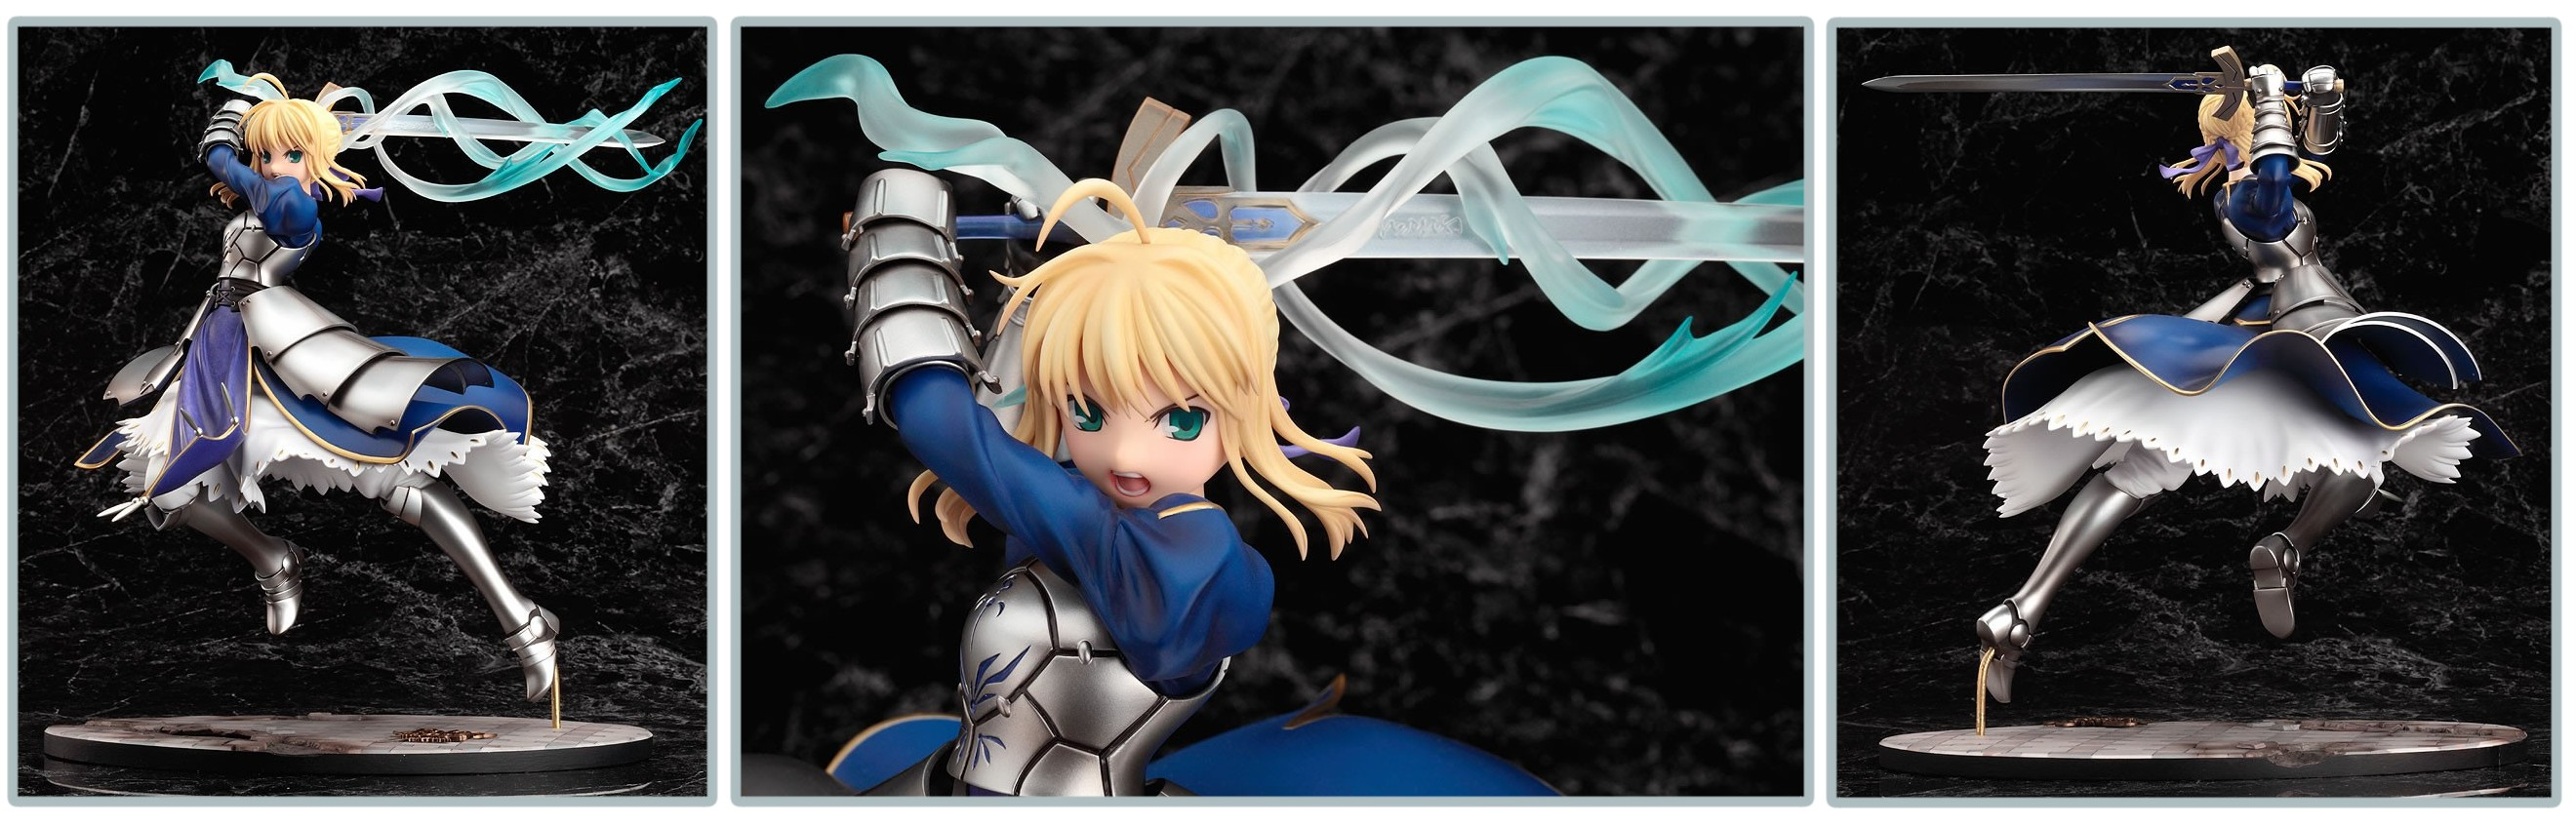 Good Smile Company – Fate Stay Night Saber 1 7, Triumphant Excalibur